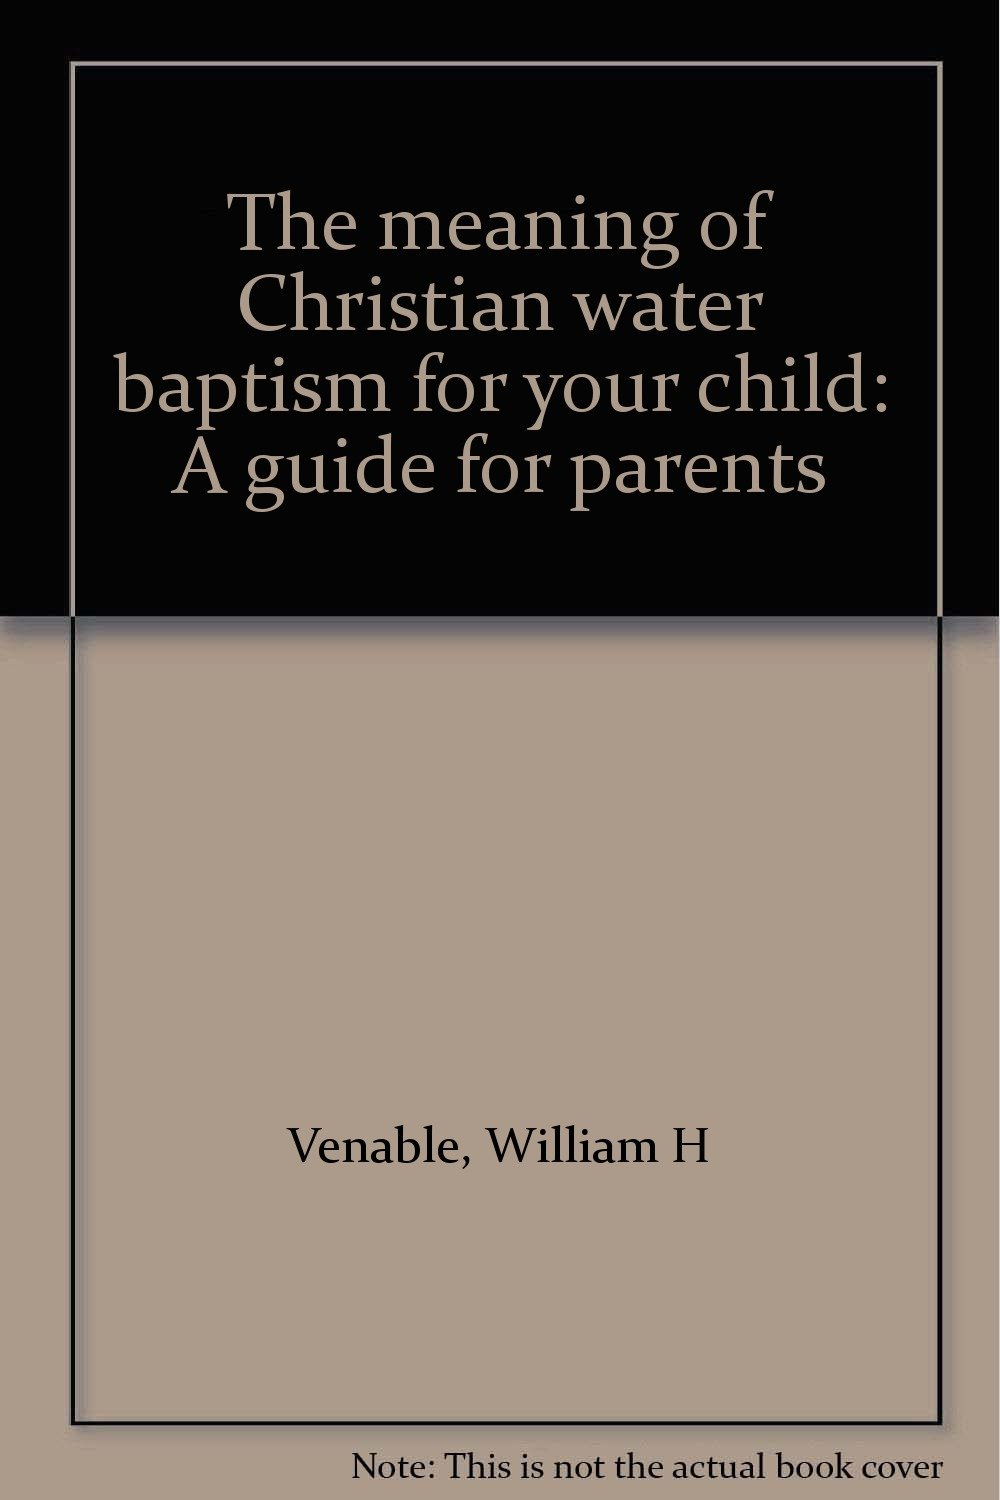 The meaning of Christian water baptism for your child: A guide for parents